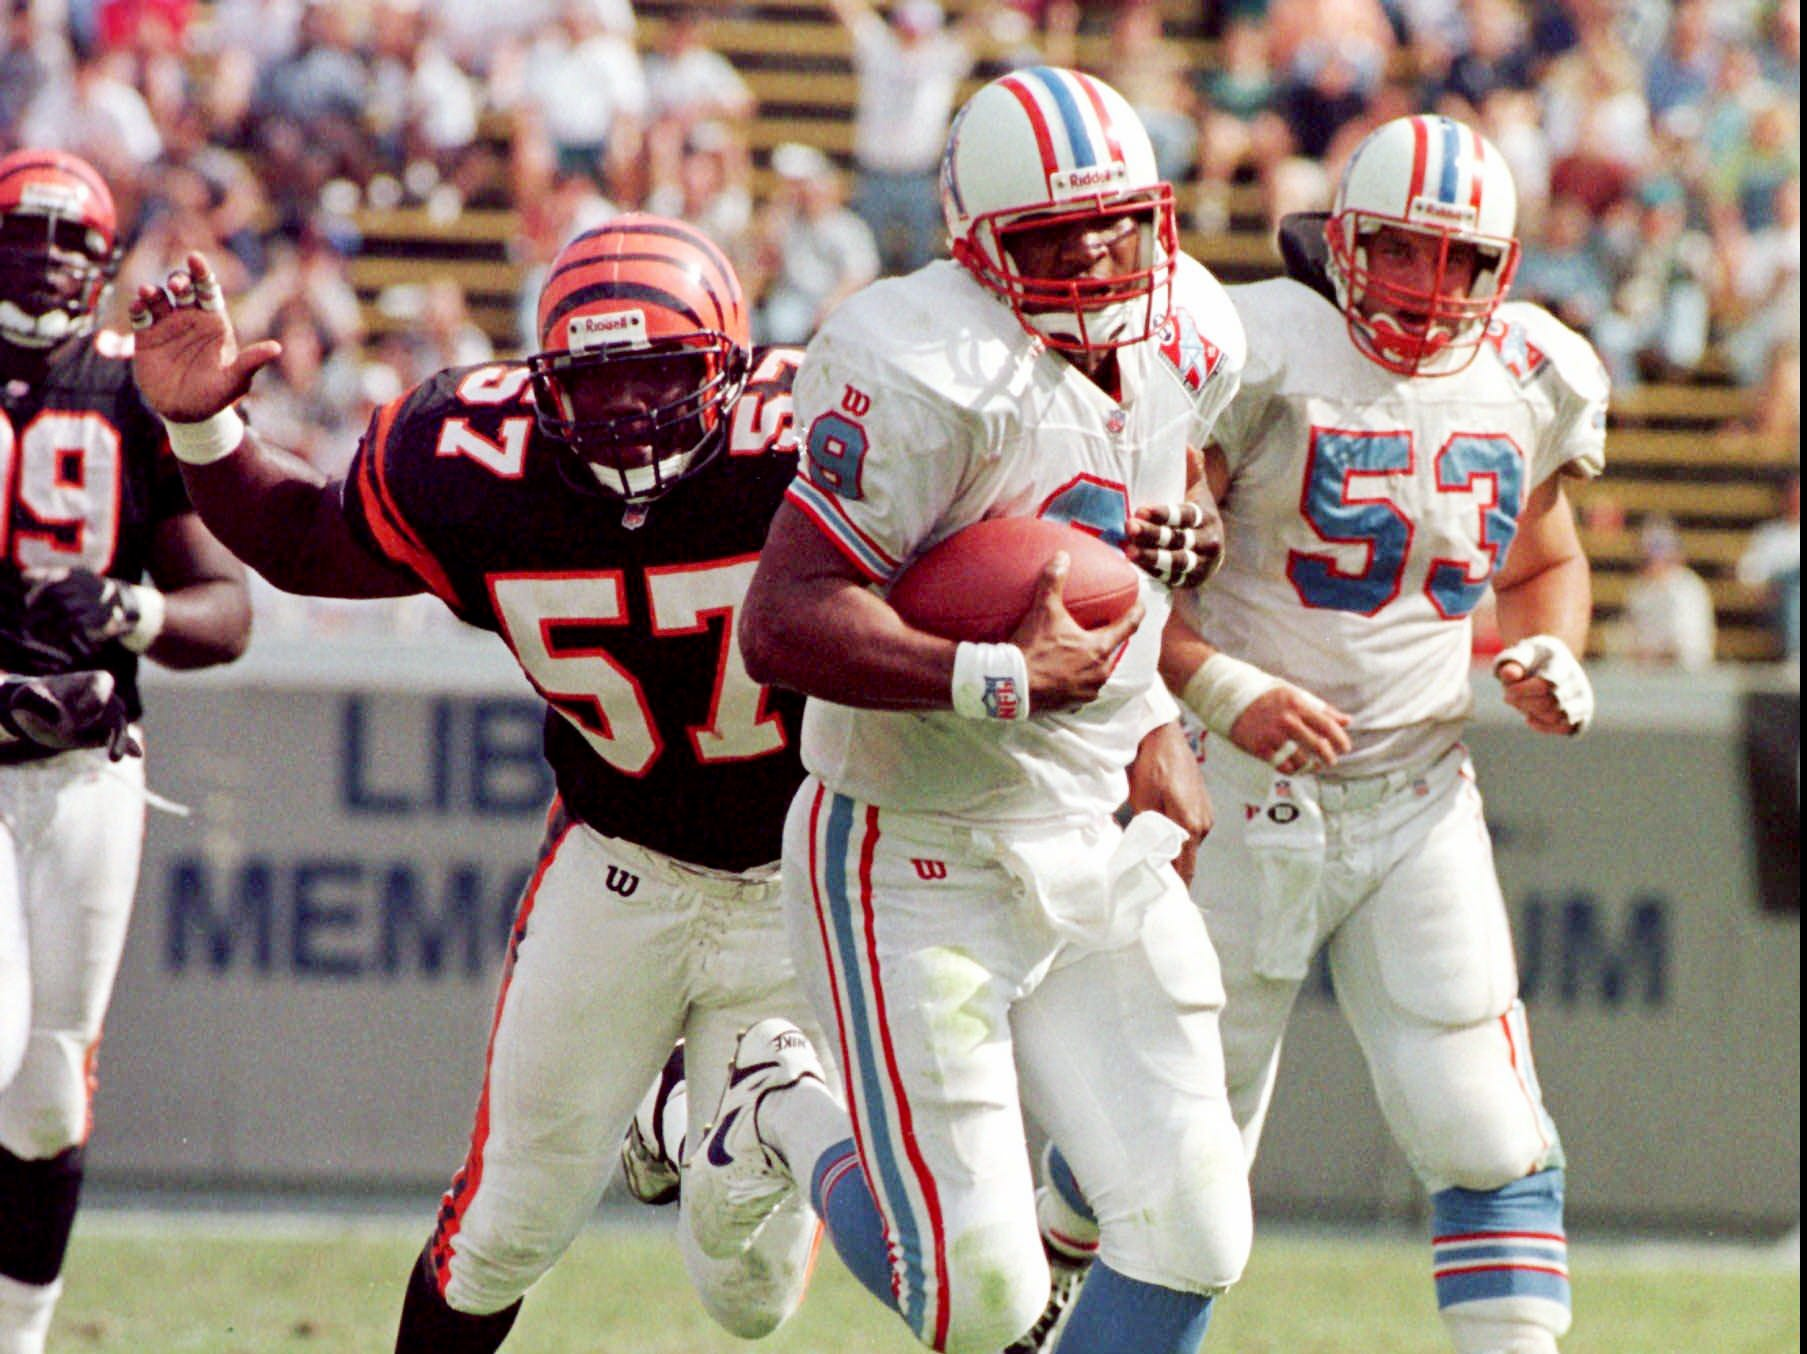 Tennessee Oilers quarterback Steve McNair, center, is chased by Cincinnati Bengals Reinard Wilson (57) as he gains 21 yards on a fourth-quarter run during the Oilers' 30-7 win Oct. 12, 1997 in Memphis. At right is Oilers center Mark Stepnoski (53).